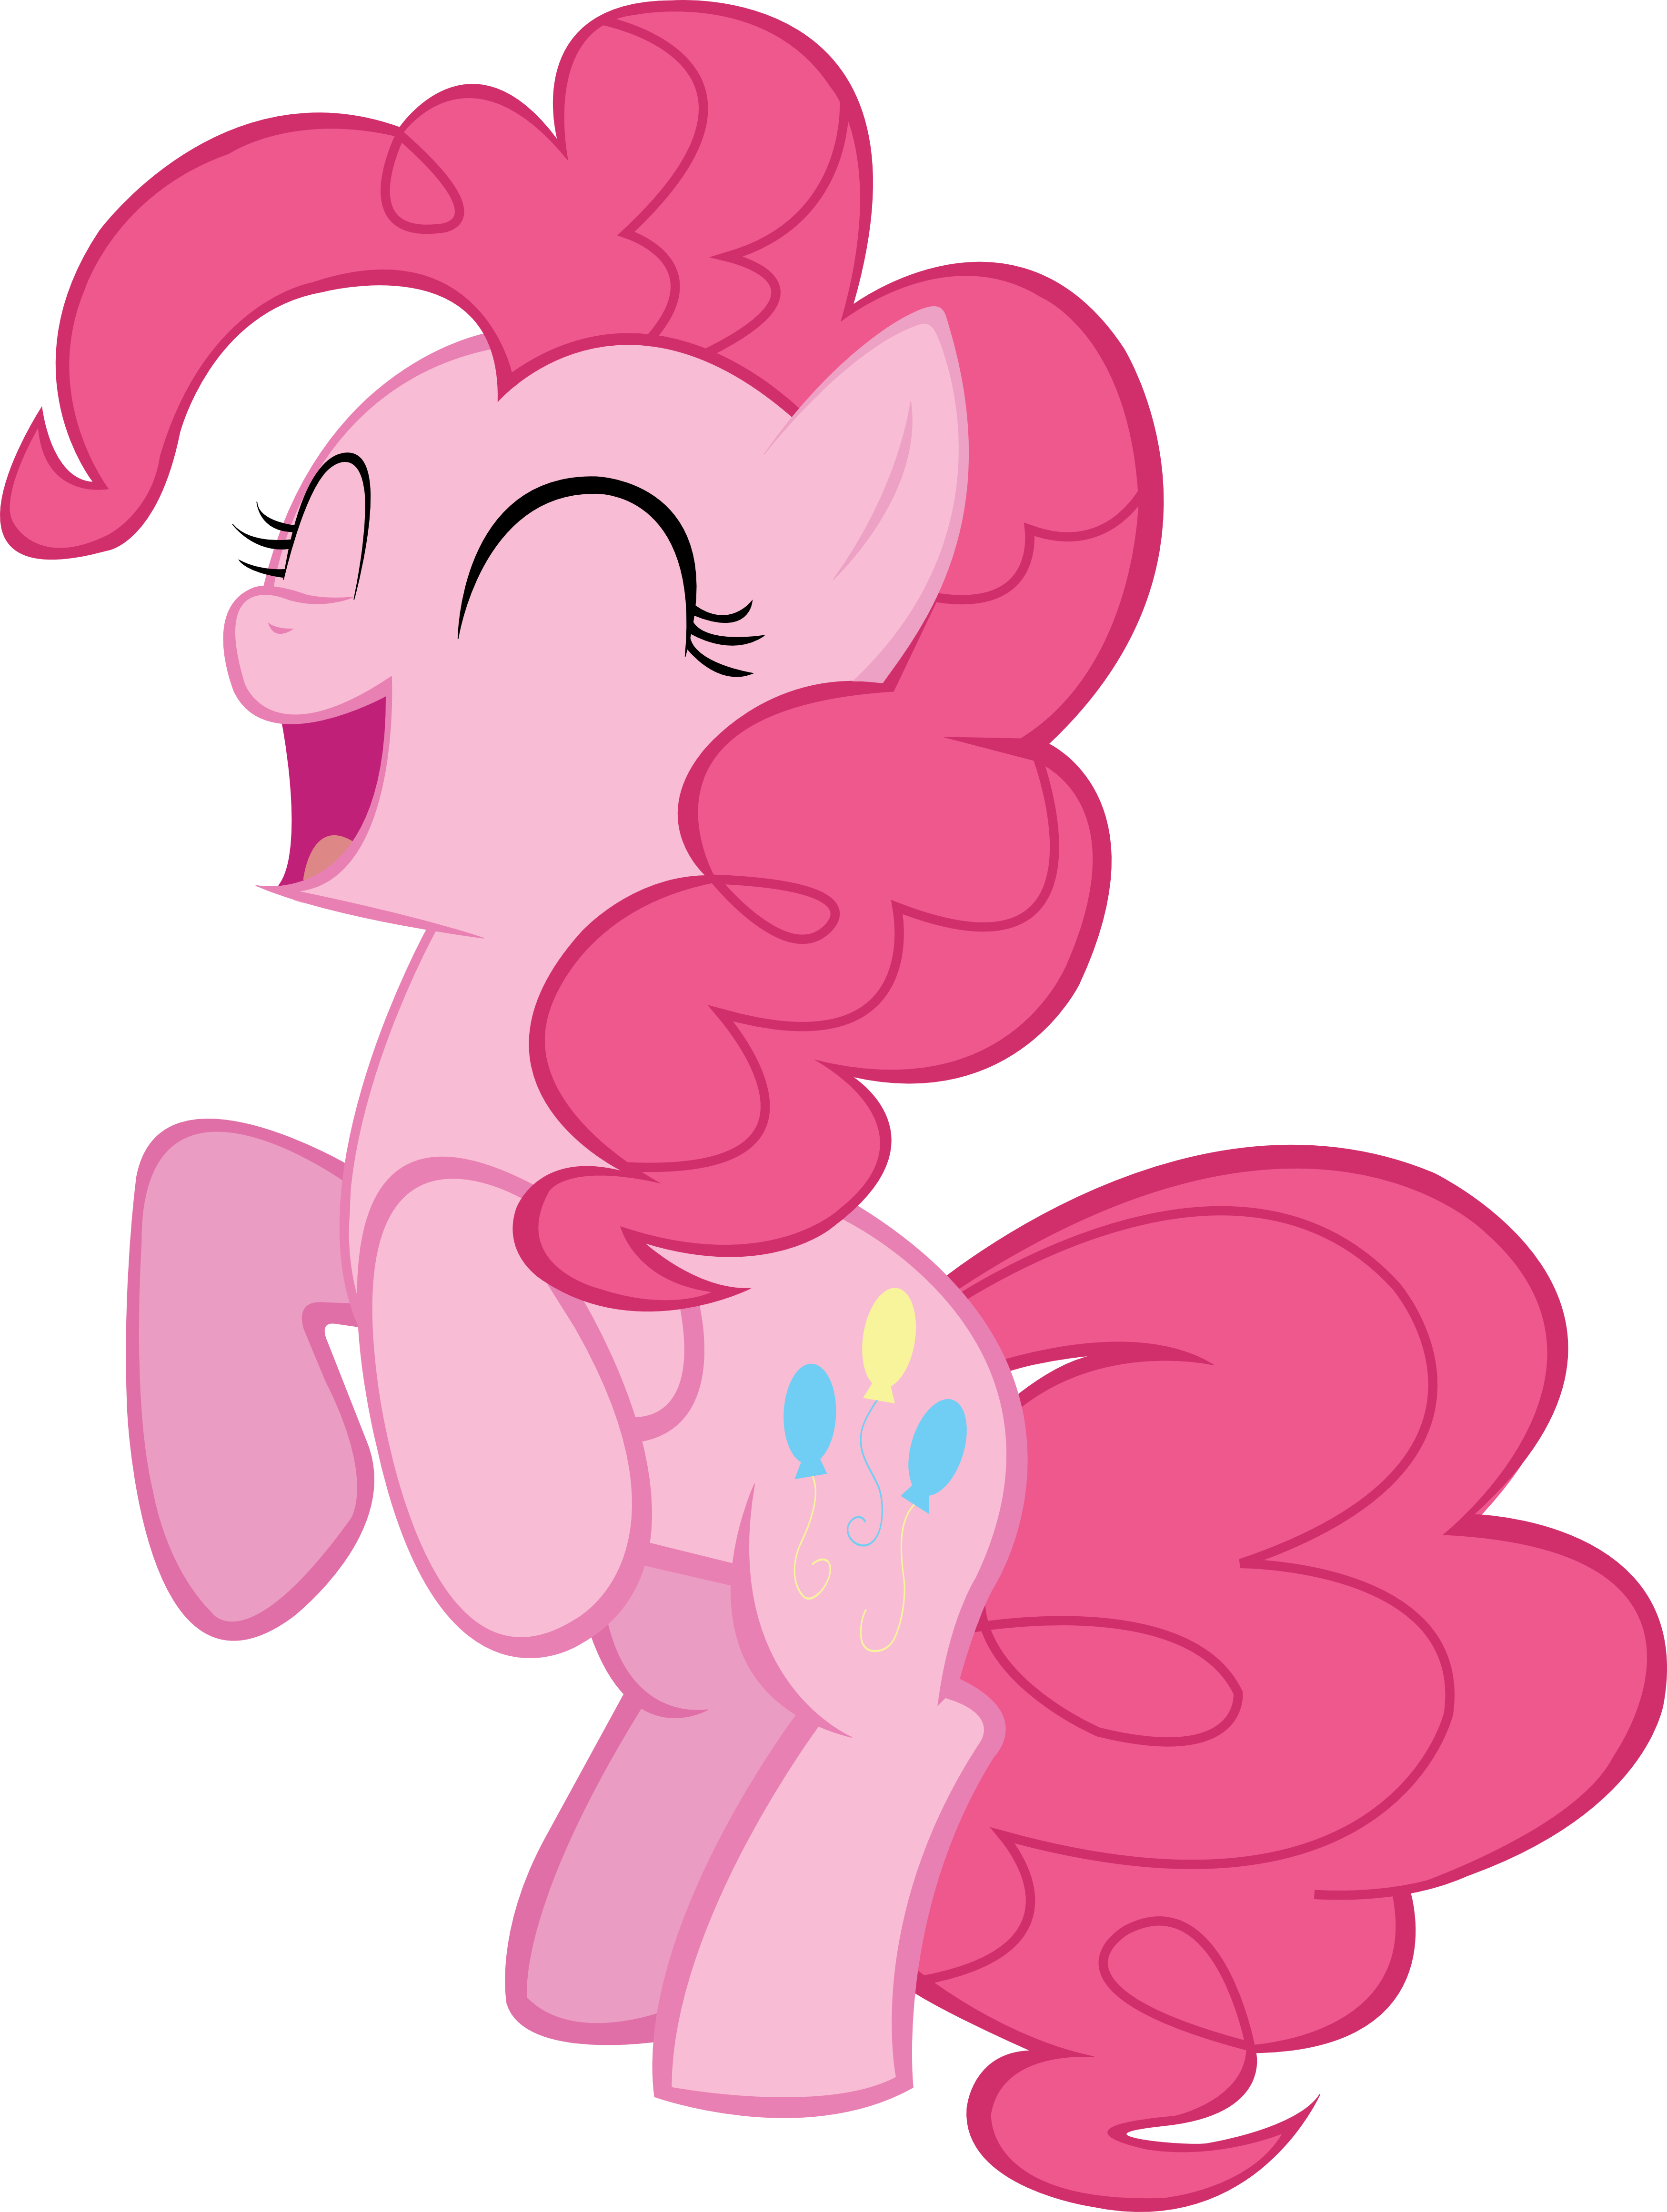 Yelling clipart good deed. Pinkie pie by peachspices